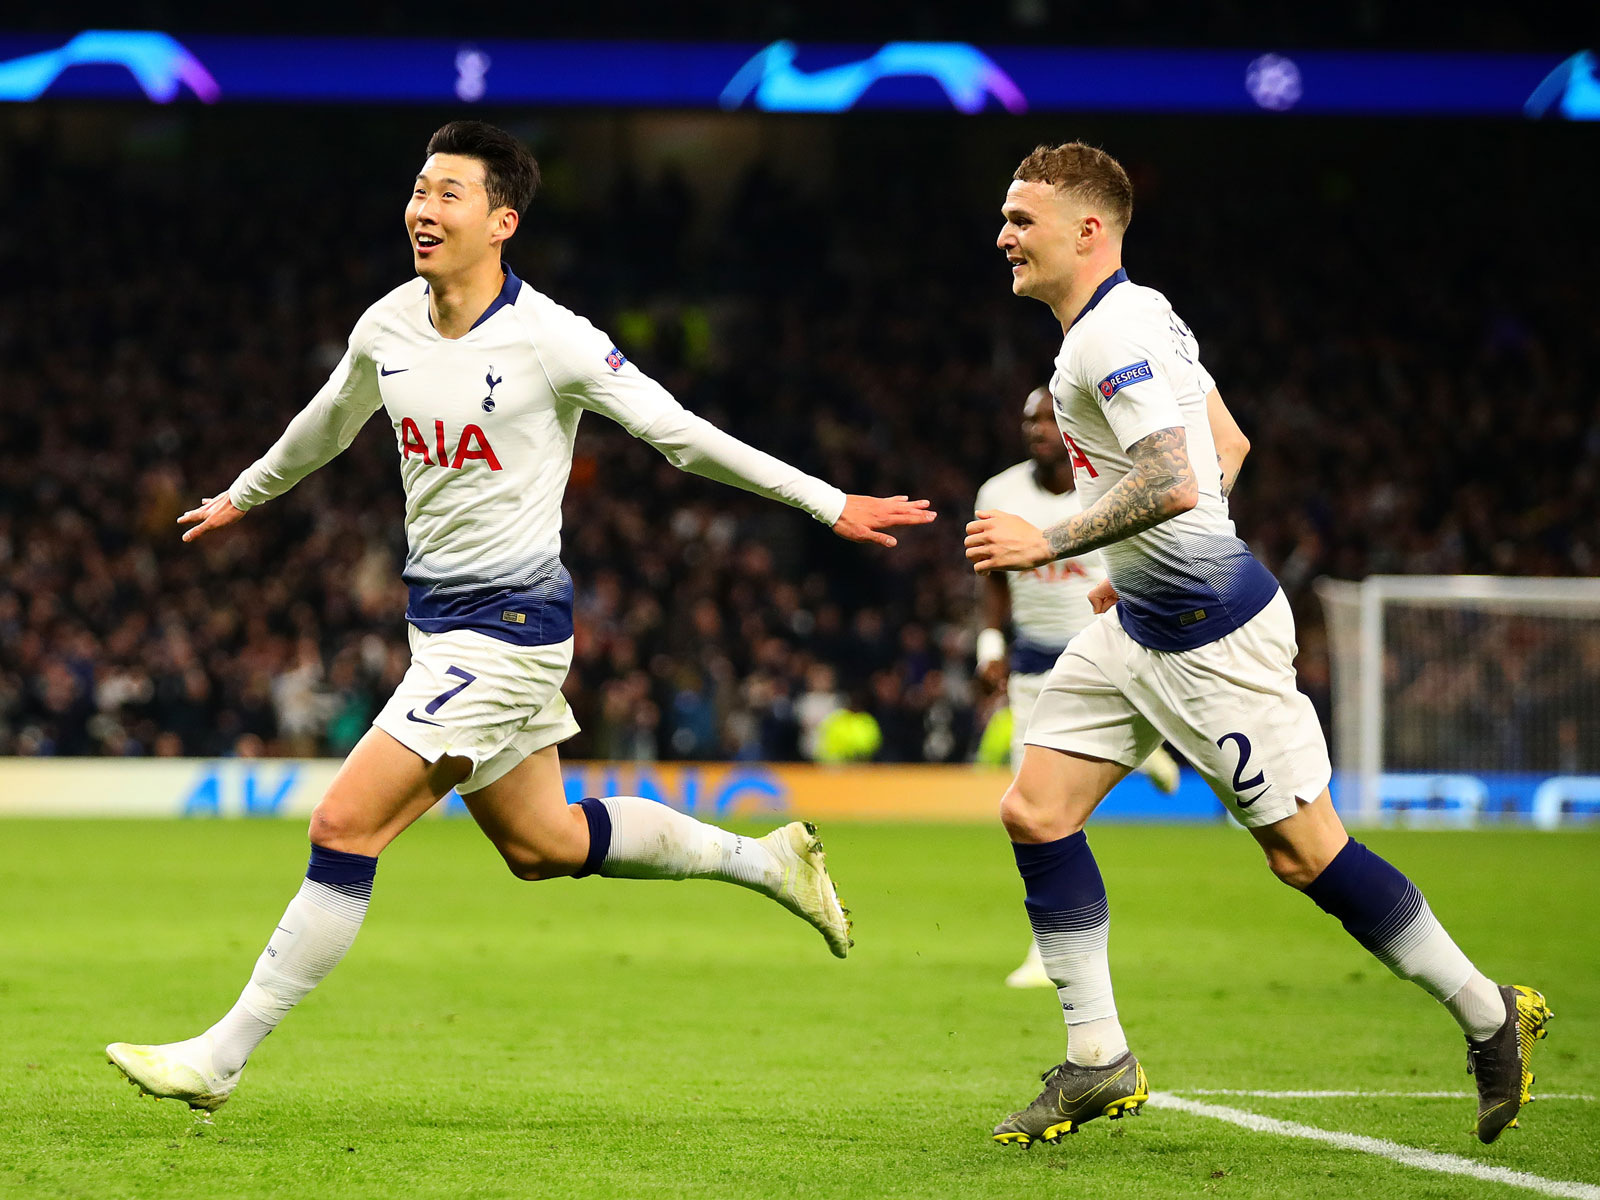 Son Heung-min scores for Tottenham vs. Manchester City in Champions League